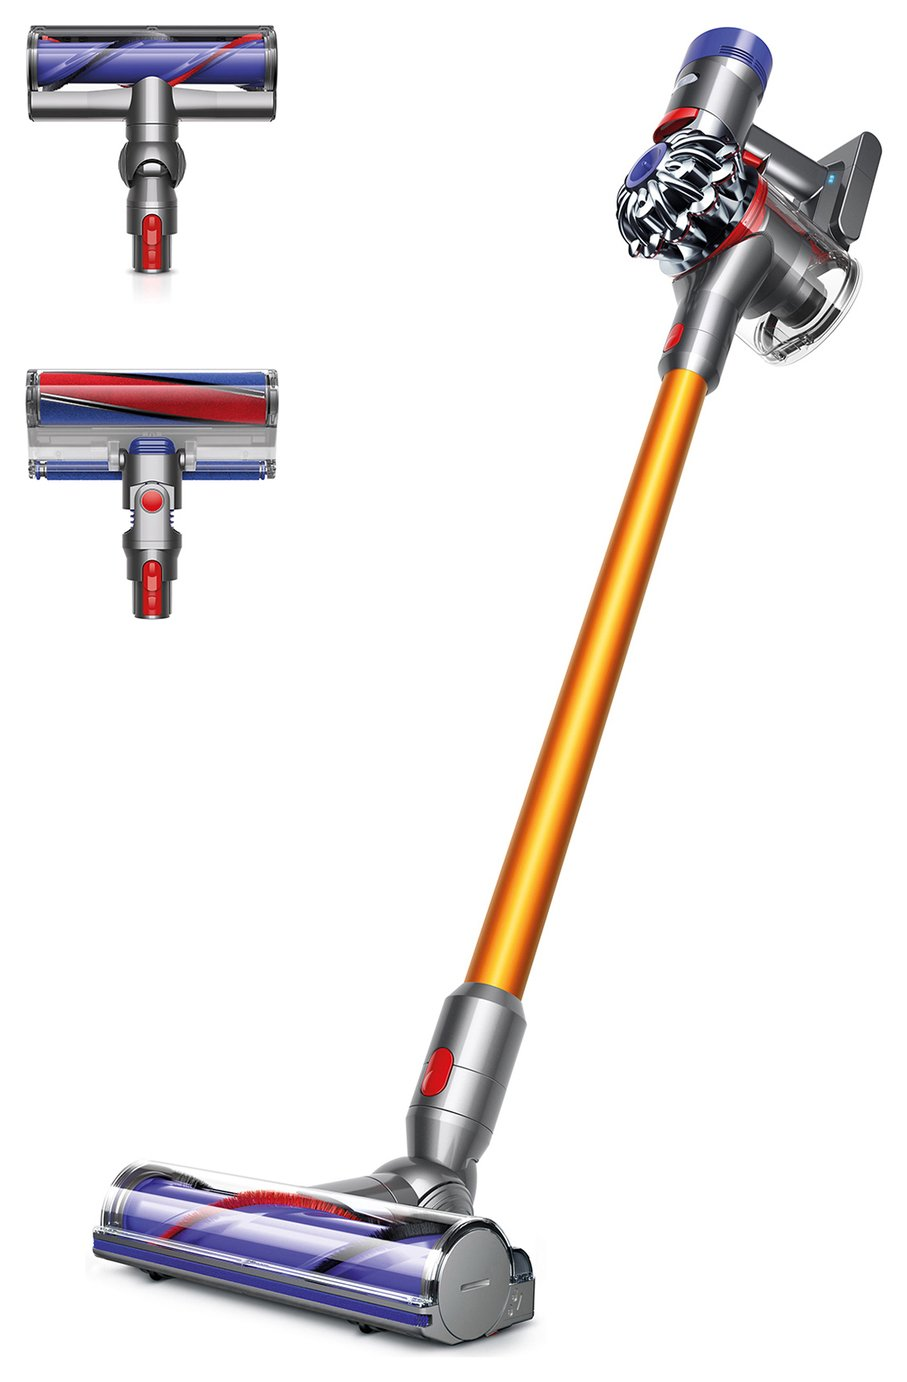 Dyson V8 Absolute Cordless Handstick Vacuum Cleaner Review